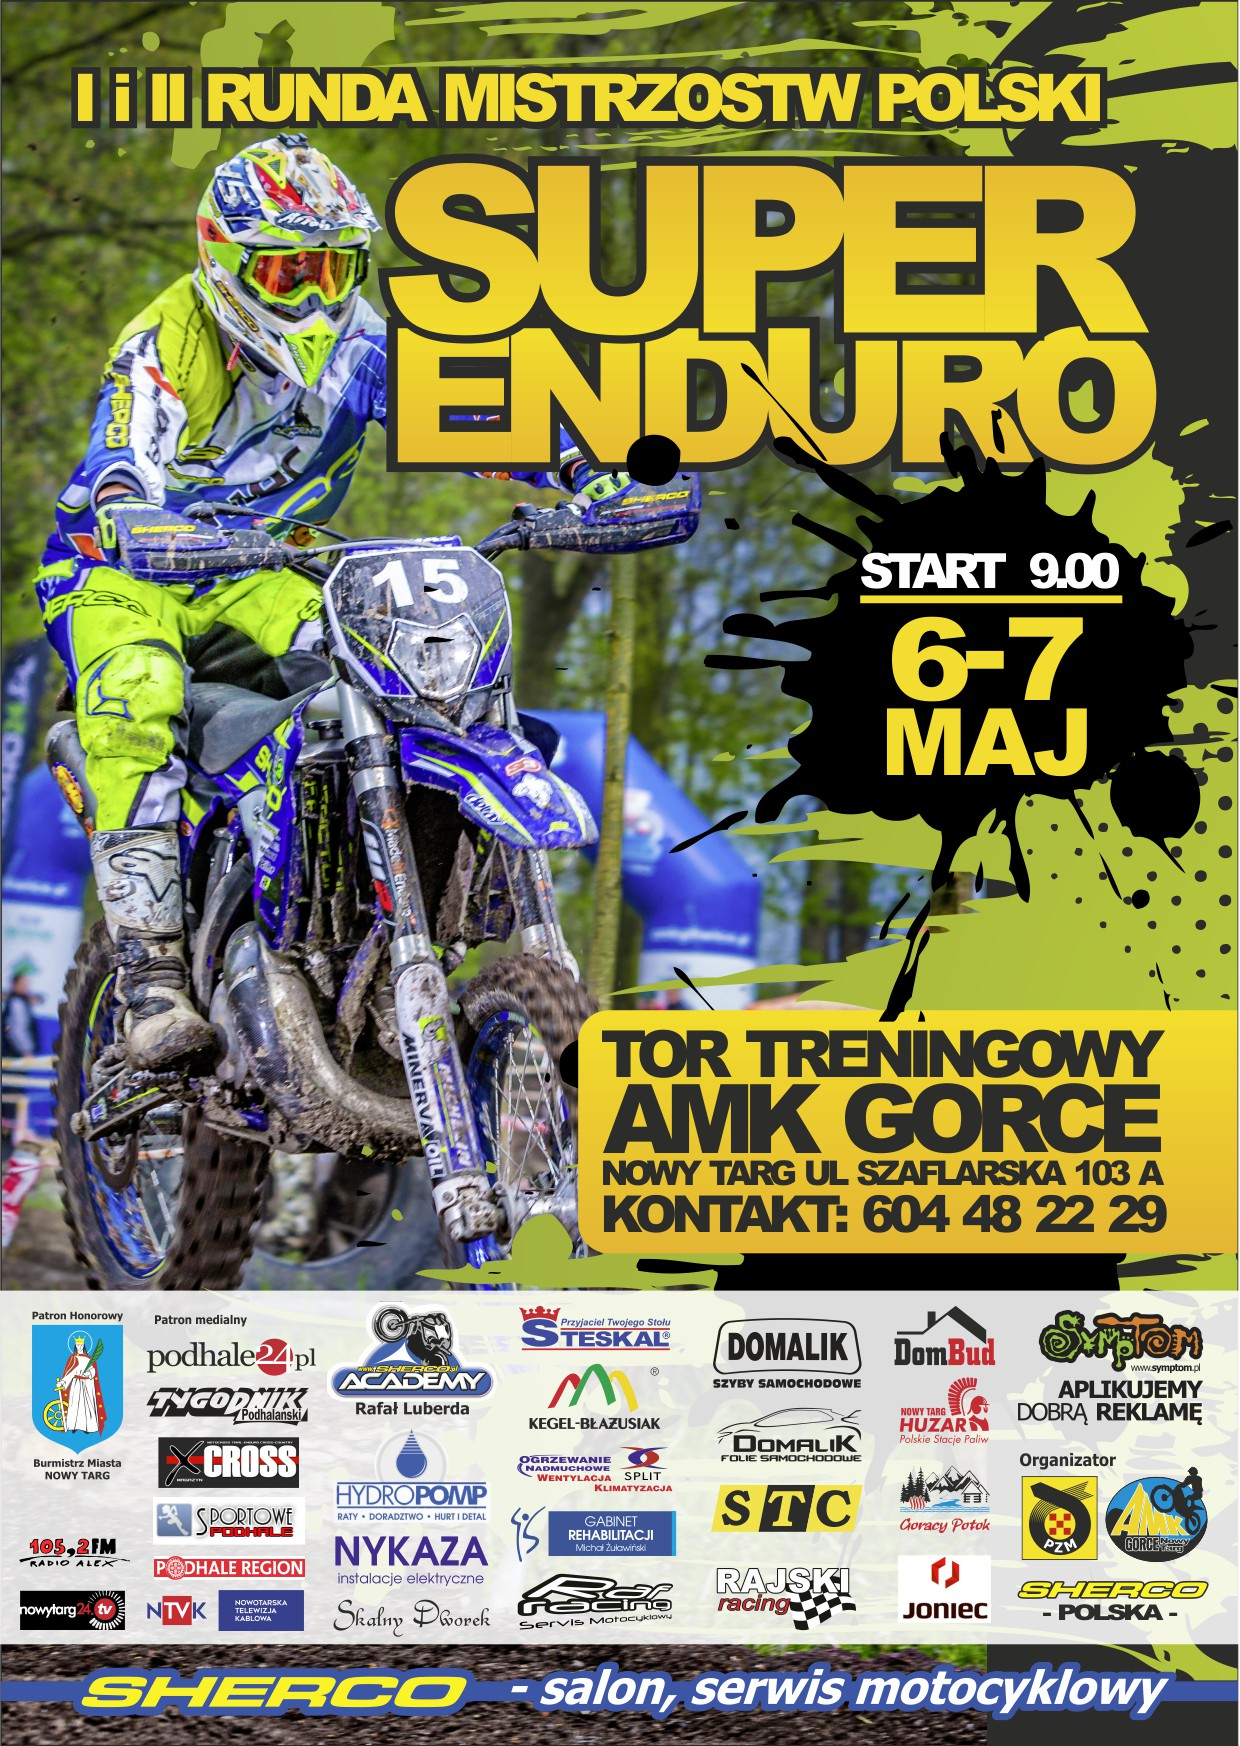 Super Enduro MP 2017